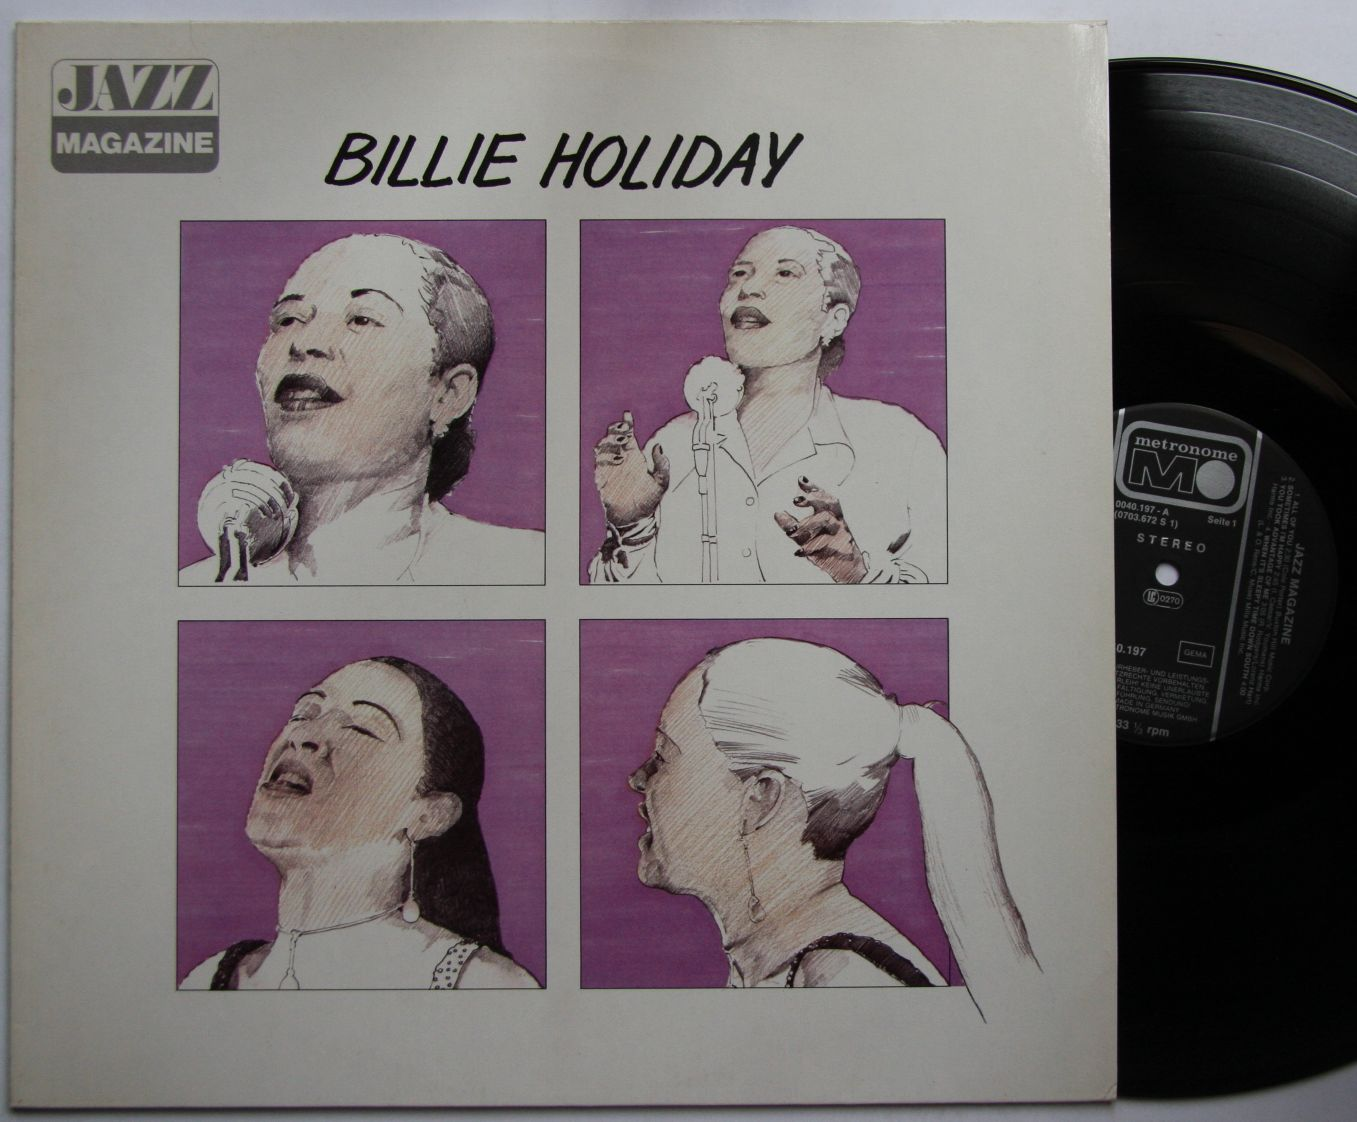 Billie Holiday - Jazz Magazine